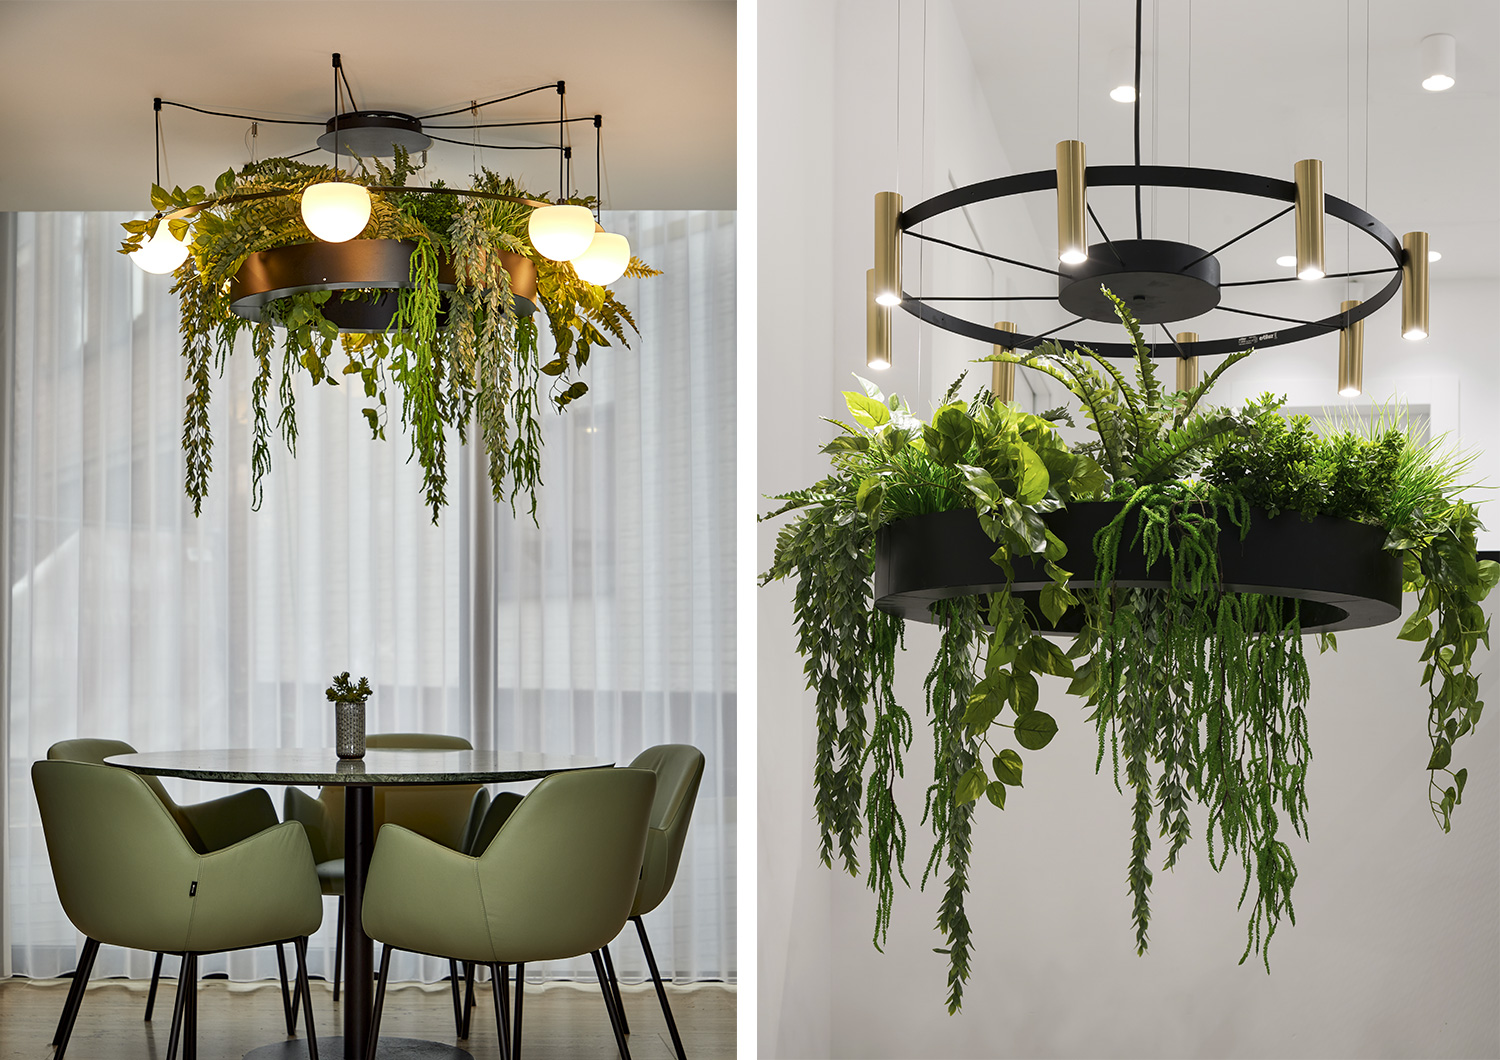 Integrate Lighting And Plants Gallery 06